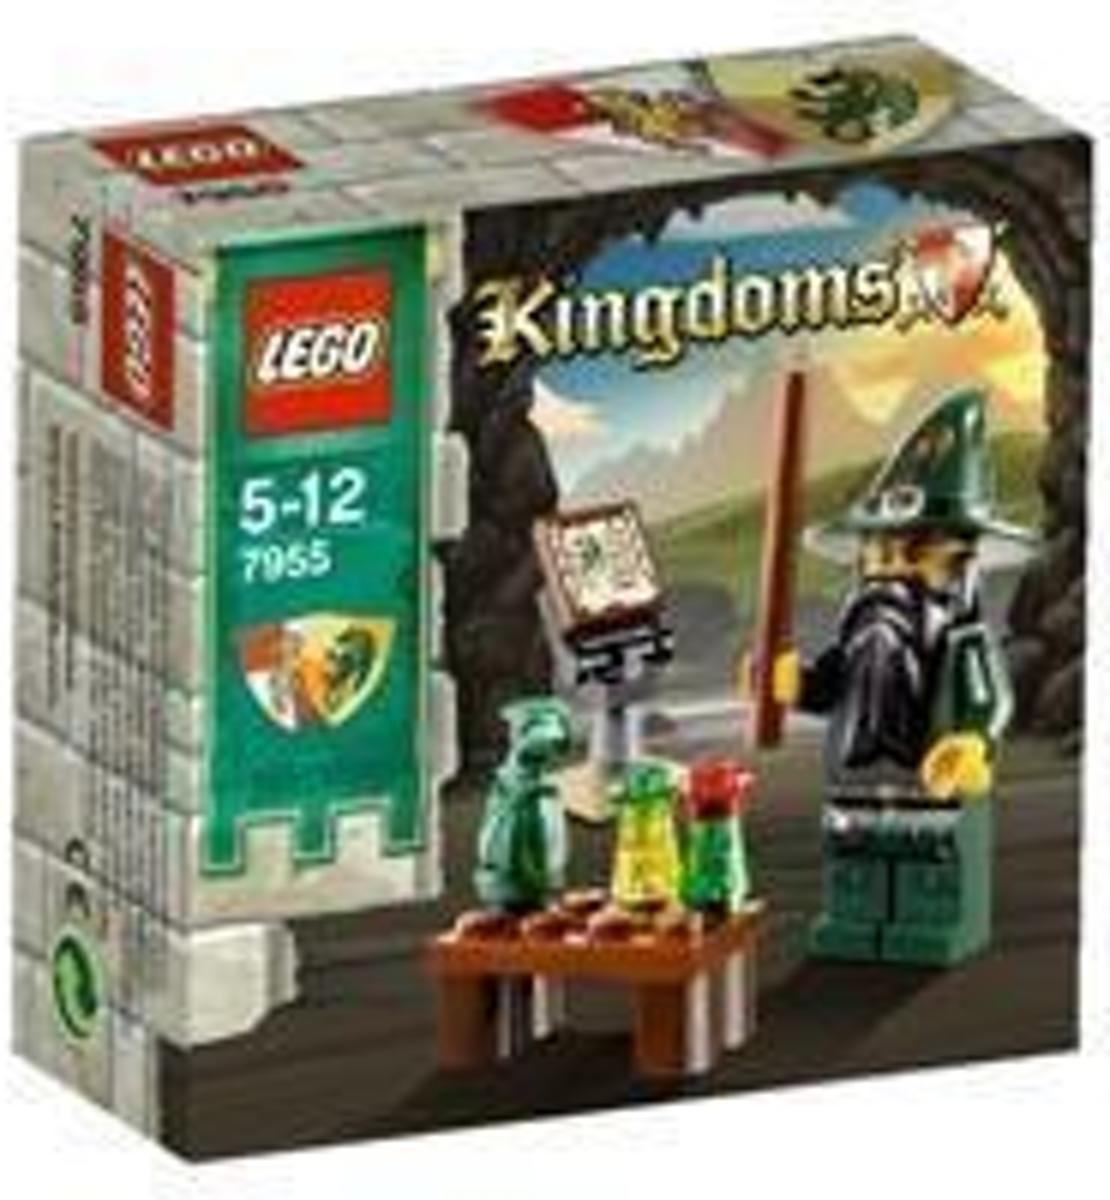 LEGO City - Kingdoms Tovenaar - 7955